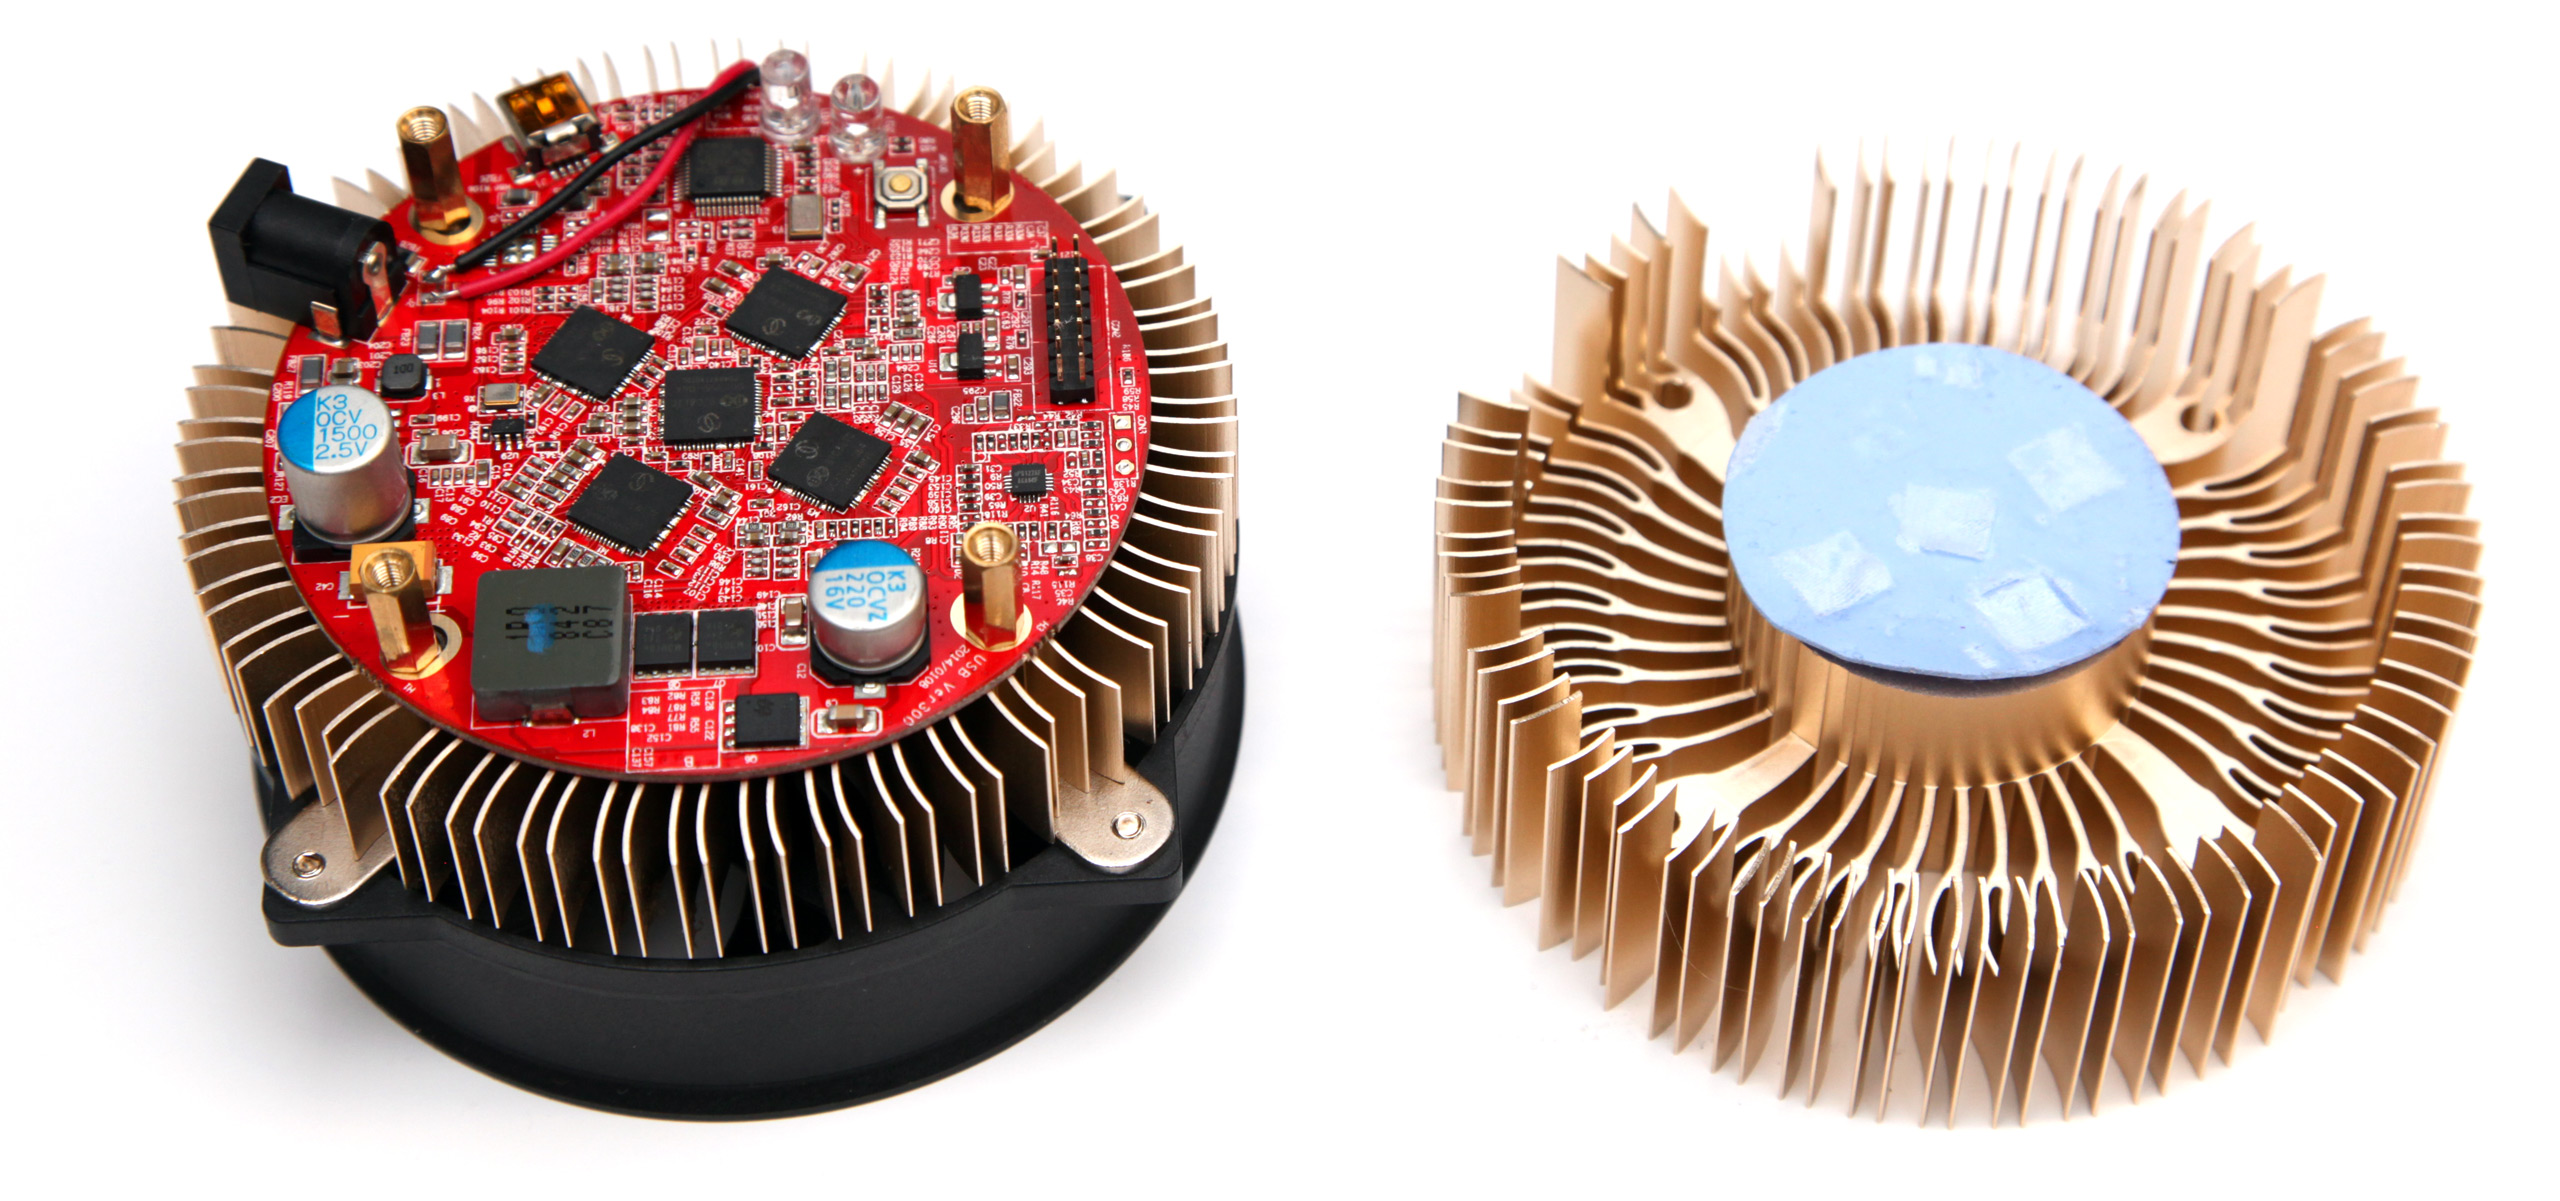 cryptomining-blog.com_wp-content_uploads_2014_03_gridseed-5-chip-asic-new-version.jpg